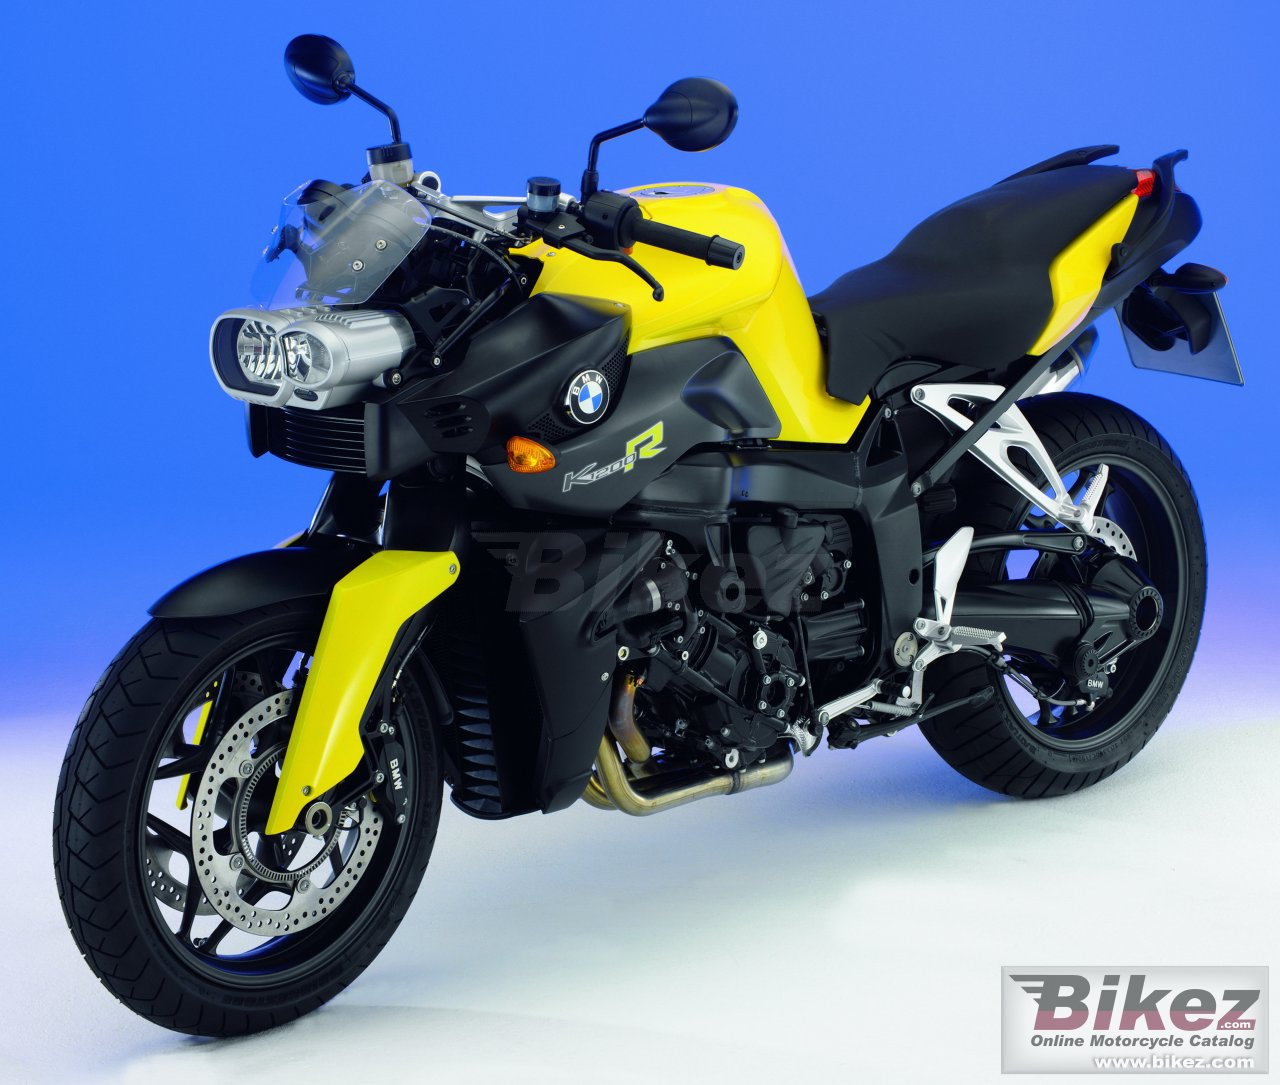 Big BMW k 1200 r picture and wallpaper from Bikez.com